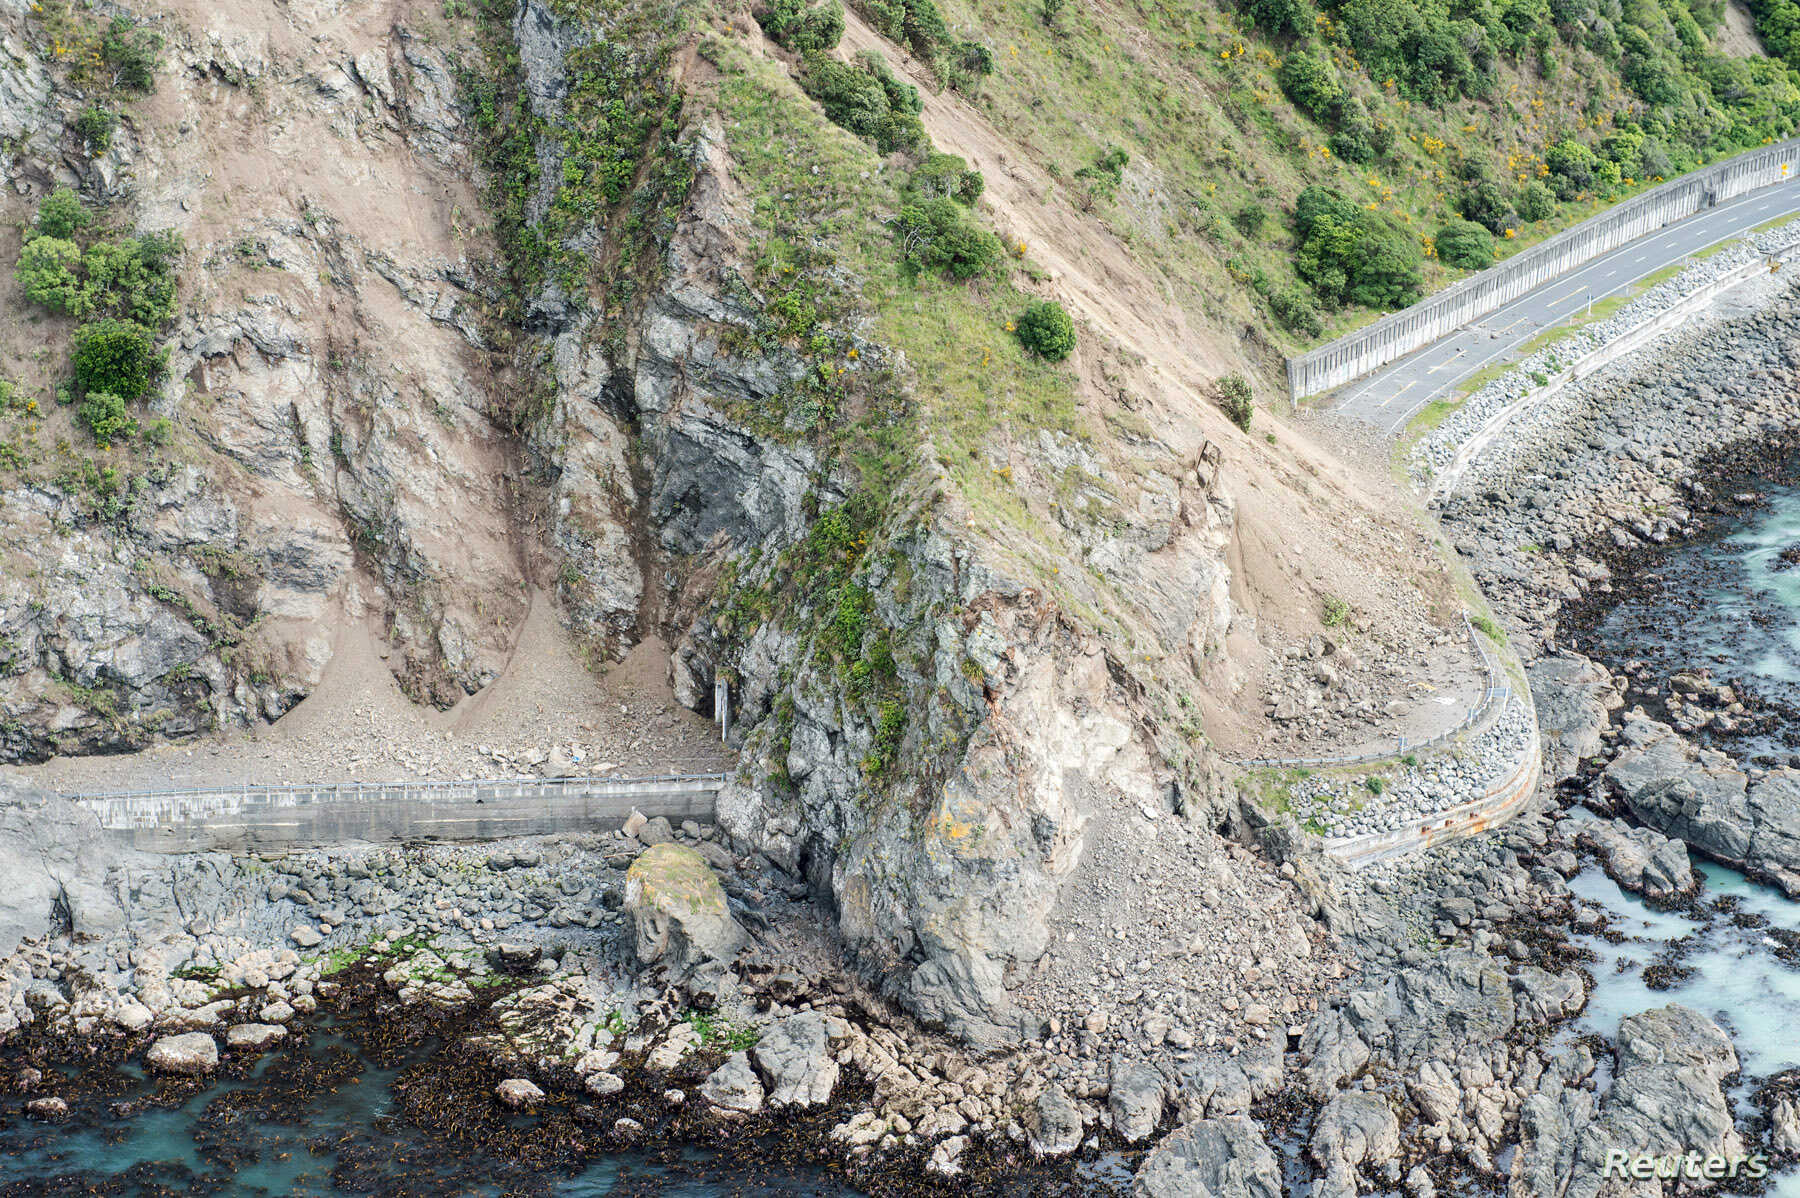 Landslides block State Highway One near Kaikoura on the upper east coast of New Zealand's South Island following an earthquake, Nov. 14, 2016.